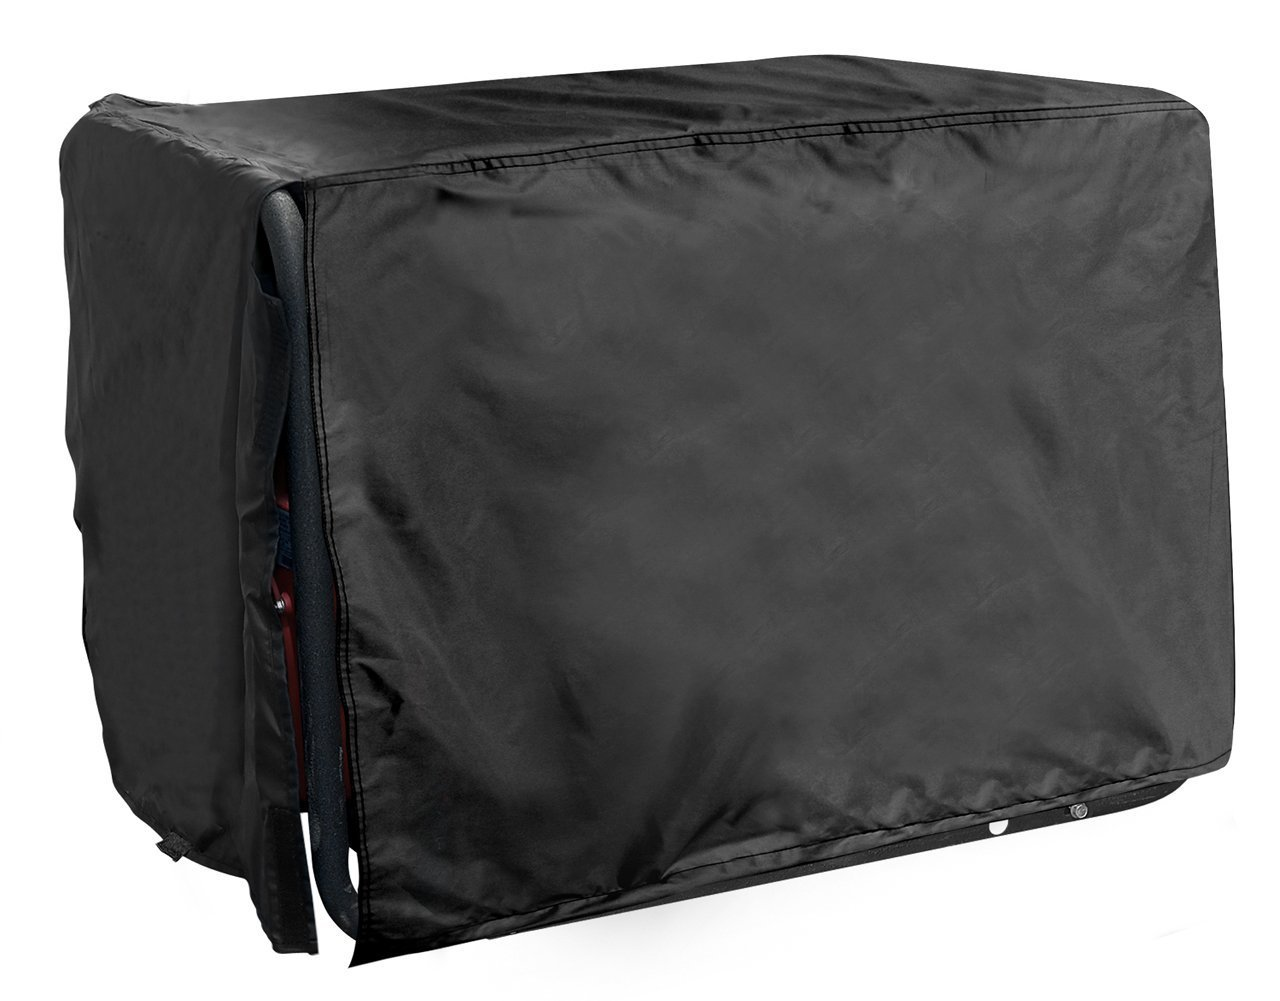 All Weather Protected Durable Black Eletric Generator Cover (X-large) by Xgear